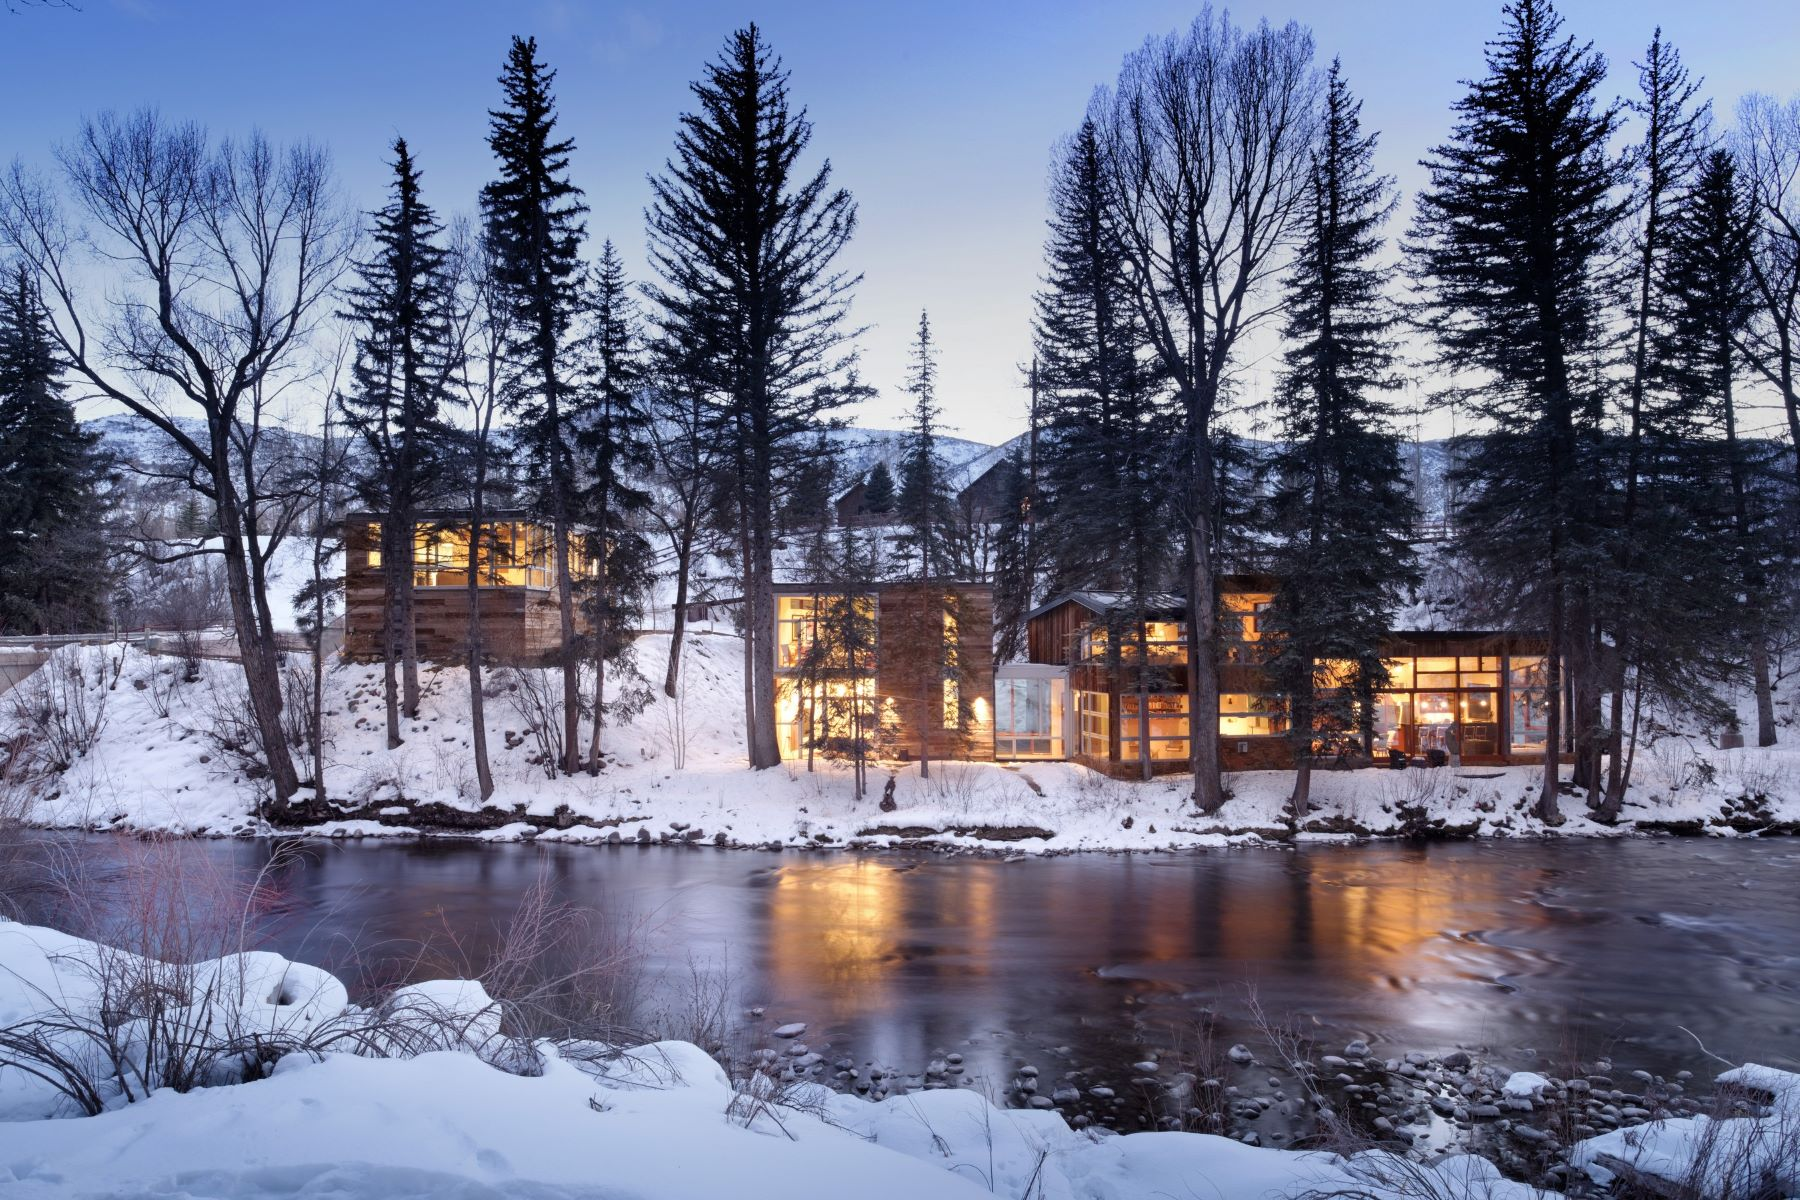 Maison unifamiliale pour l Vente à Stunning River Home 161/163 Gerbaz Way Snowmass, Colorado, 81654 États-Unis